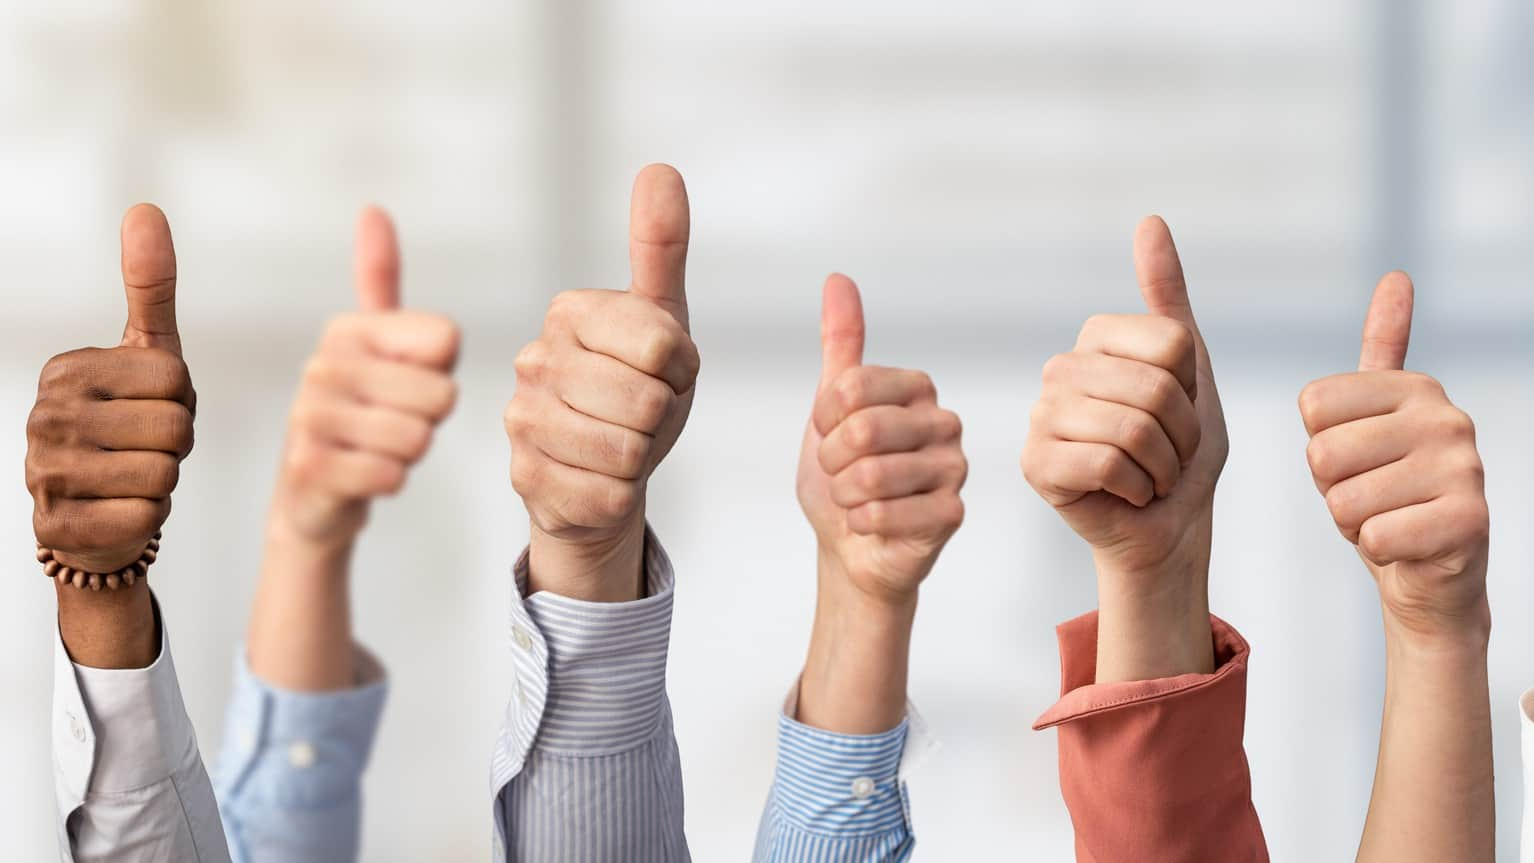 positive asx share price represented by lots of hands all making thumbs up gesture